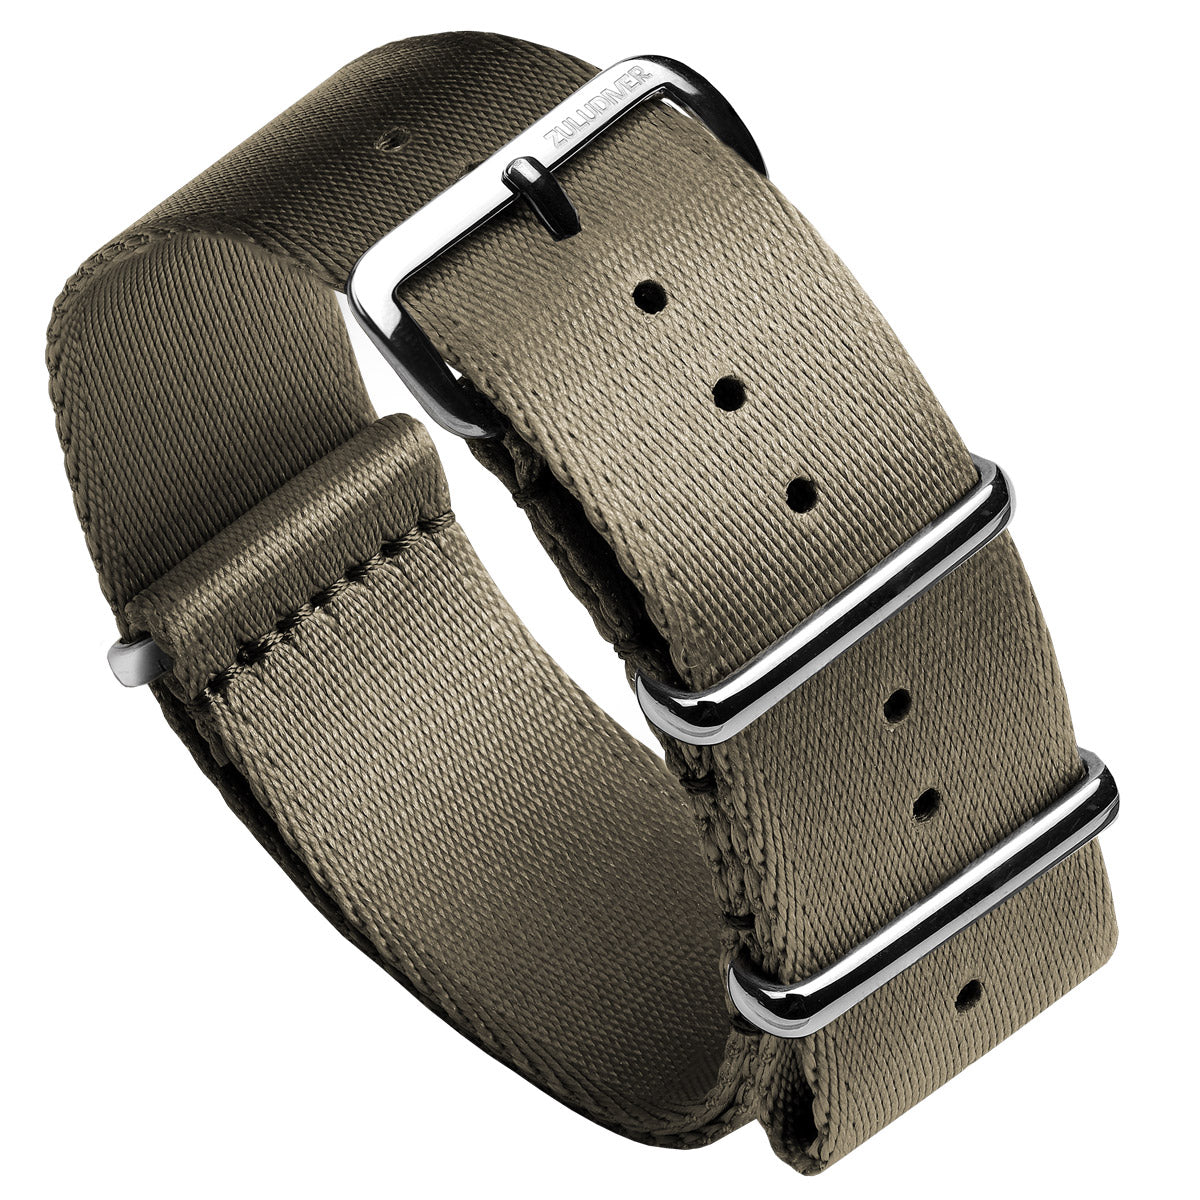 Professional ZULUDIVER Military Herringbone NATO Watch Strap, Polished Hardware